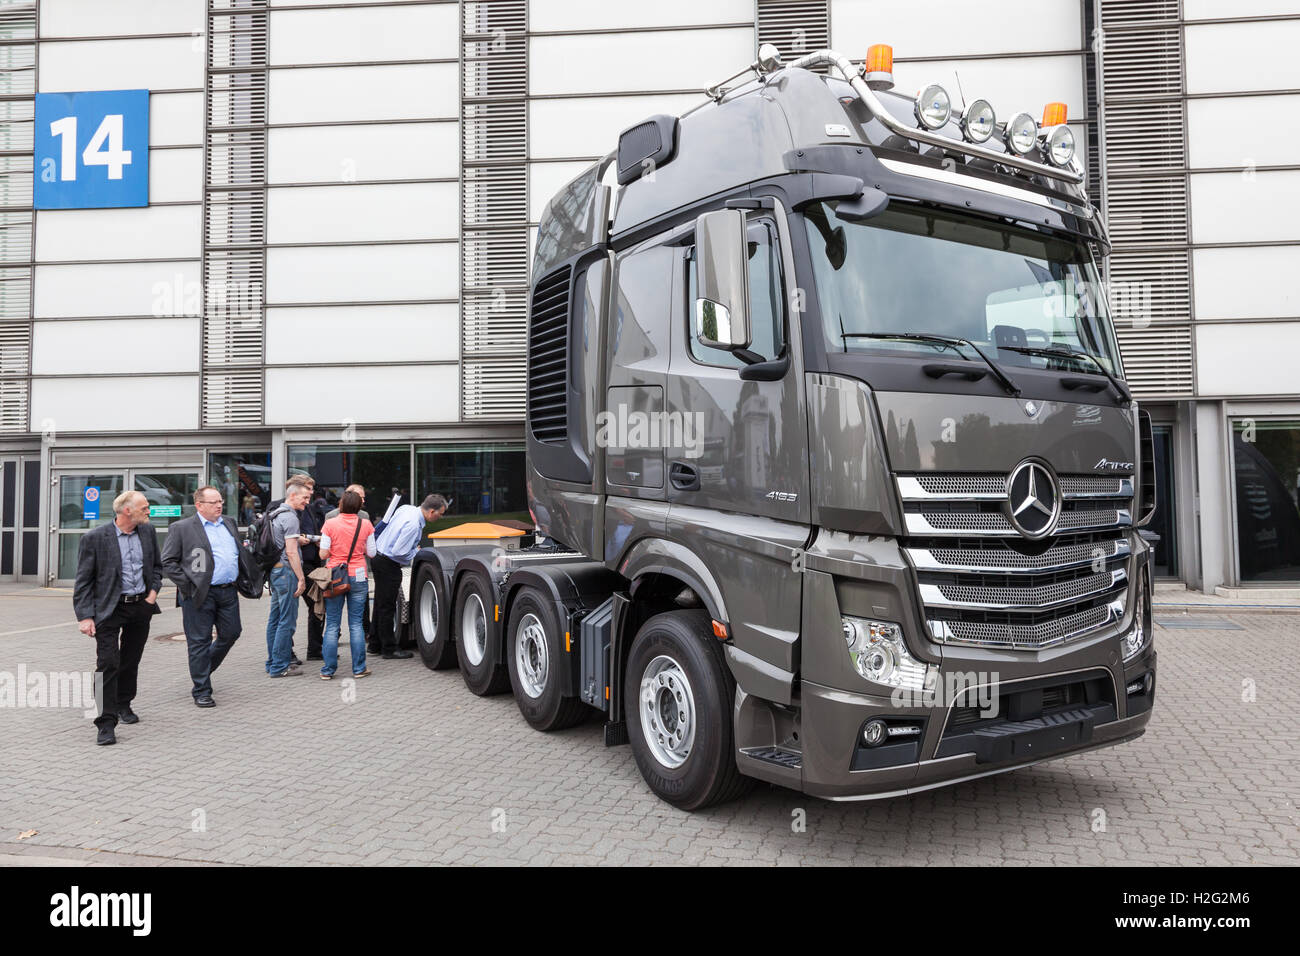 Mercedes Benz Actros heavy duty semitrailer truck Stock Photo ...